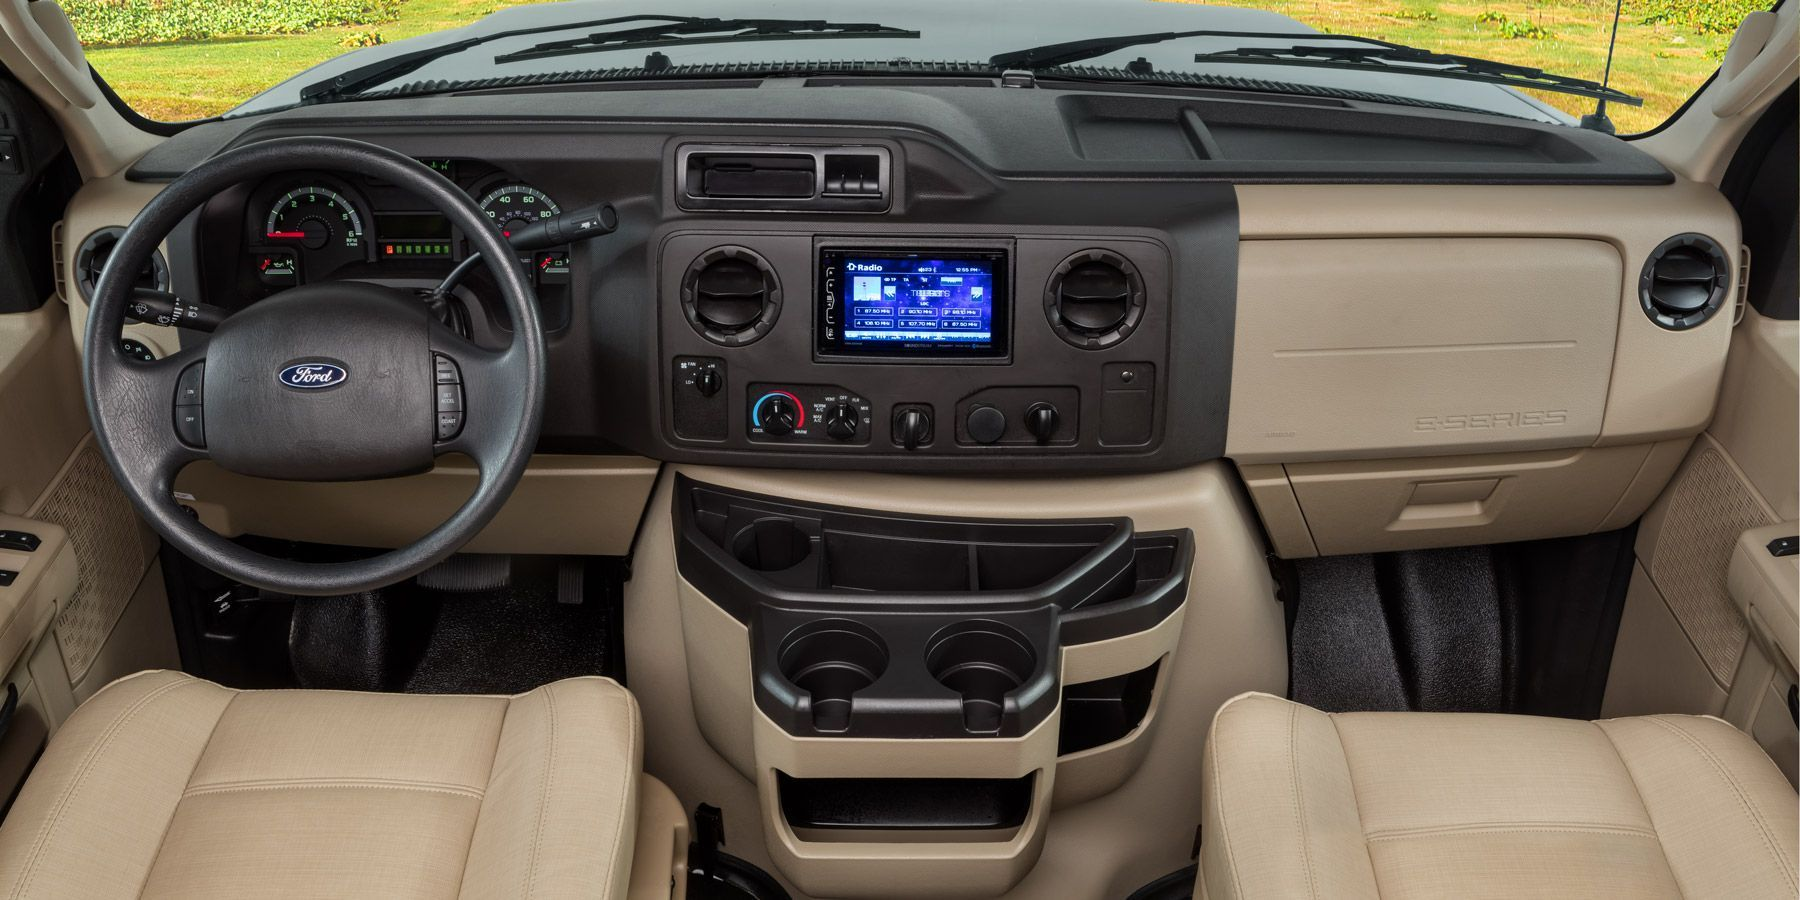 Cruise safely and comfortably thanks to power windows